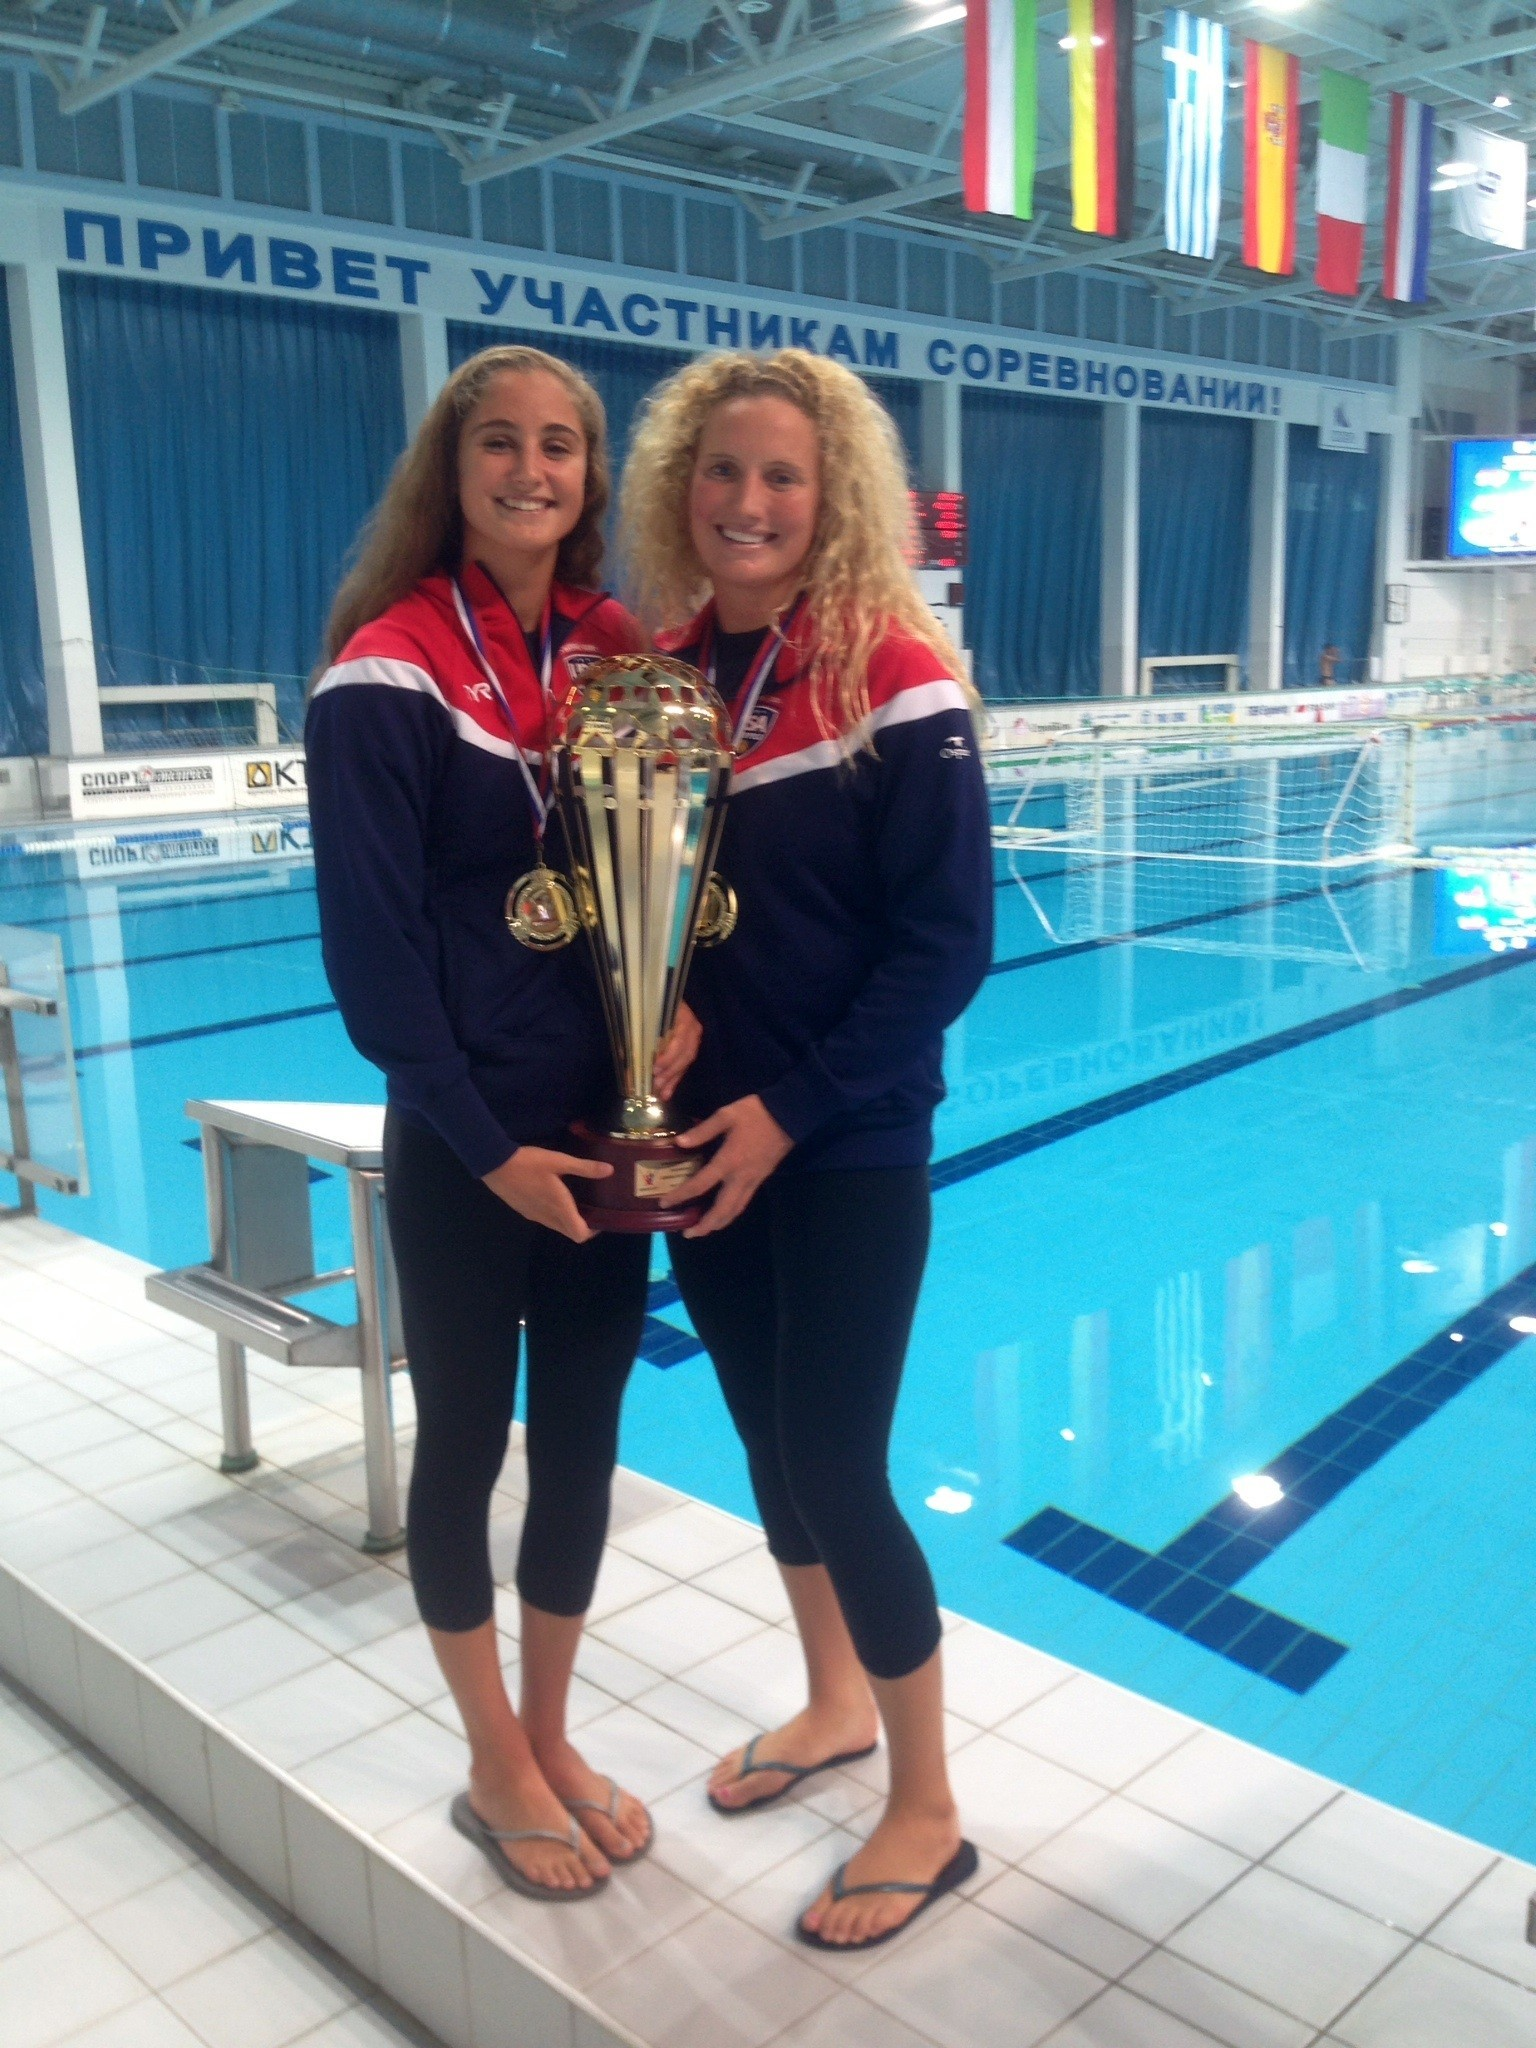 Gilchrist, Musselman win Kirishi Cup with US women's water polo team - Daily Pilot